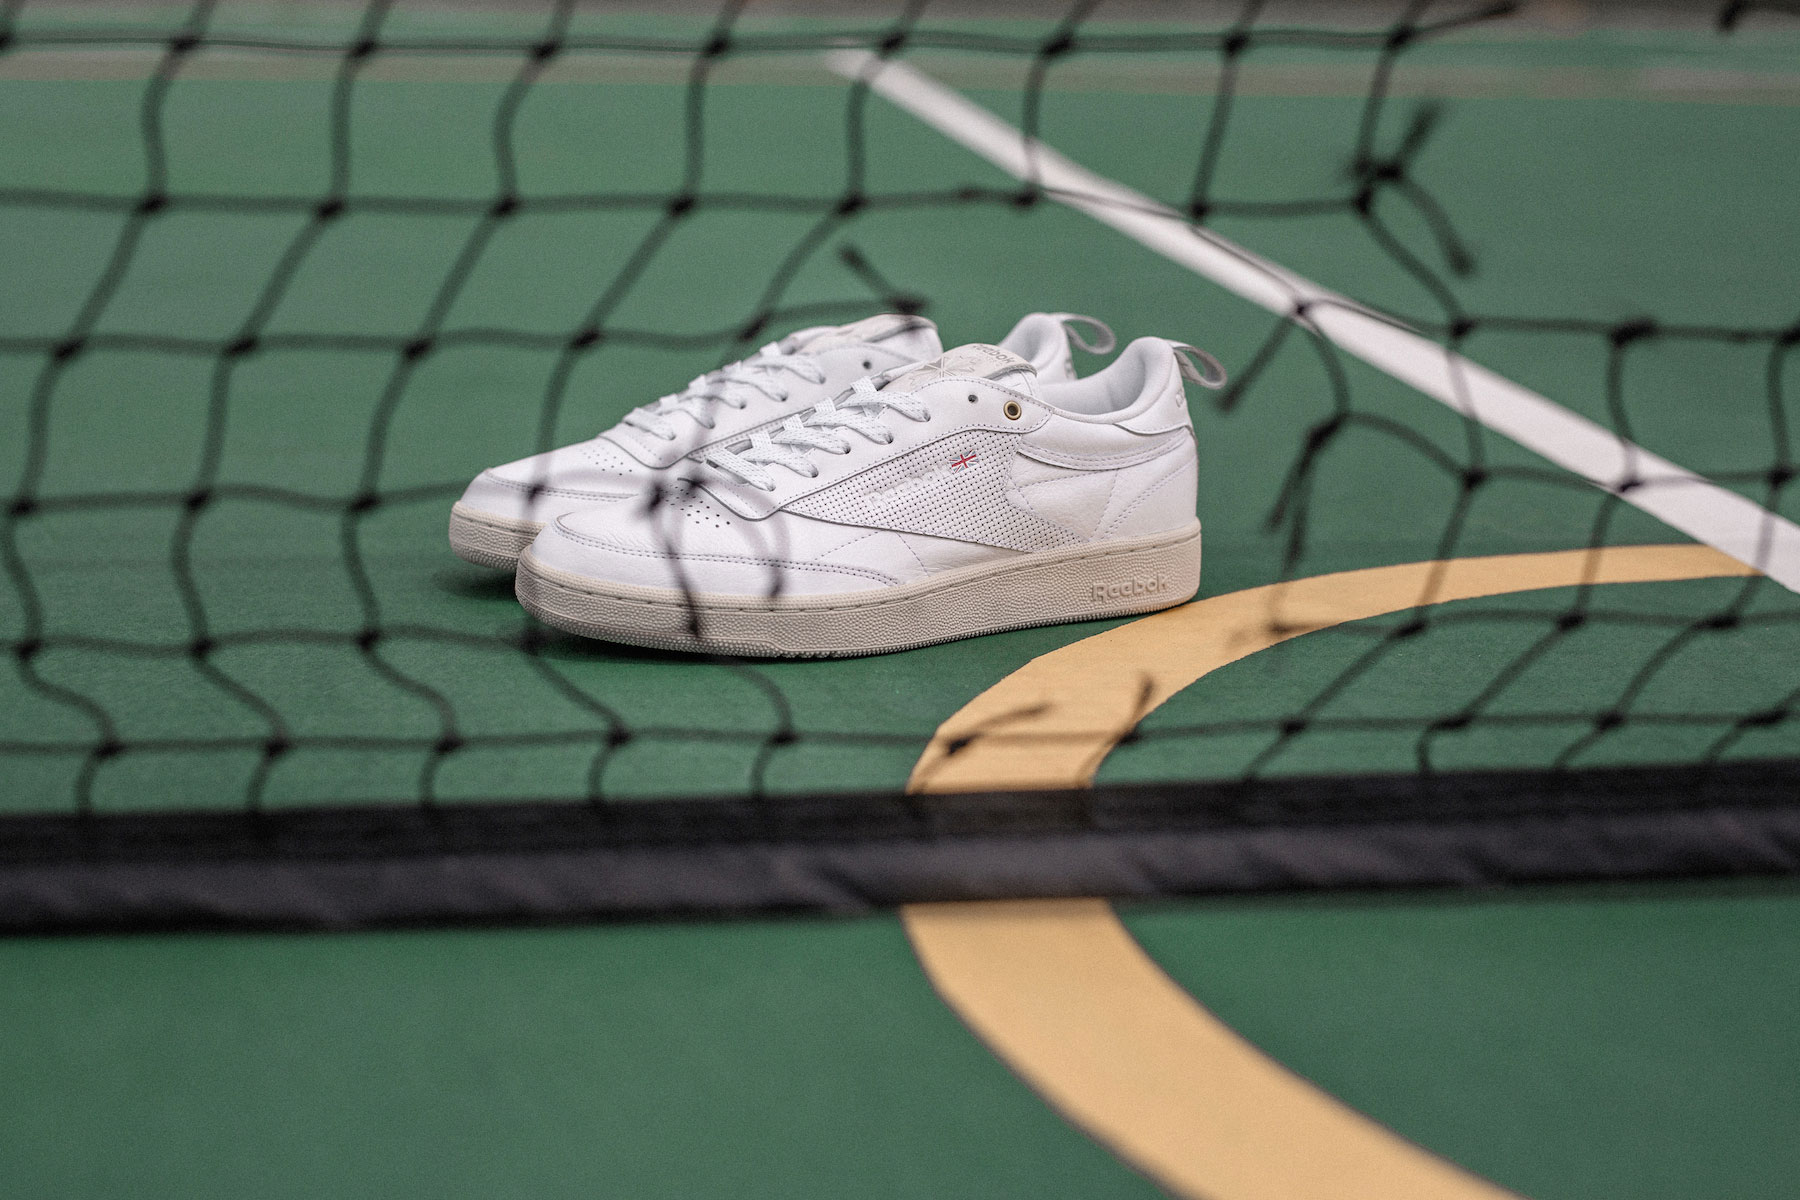 REEBOK_X_CROSSOVER_CLUBC_MATCHPOINT-MAIN